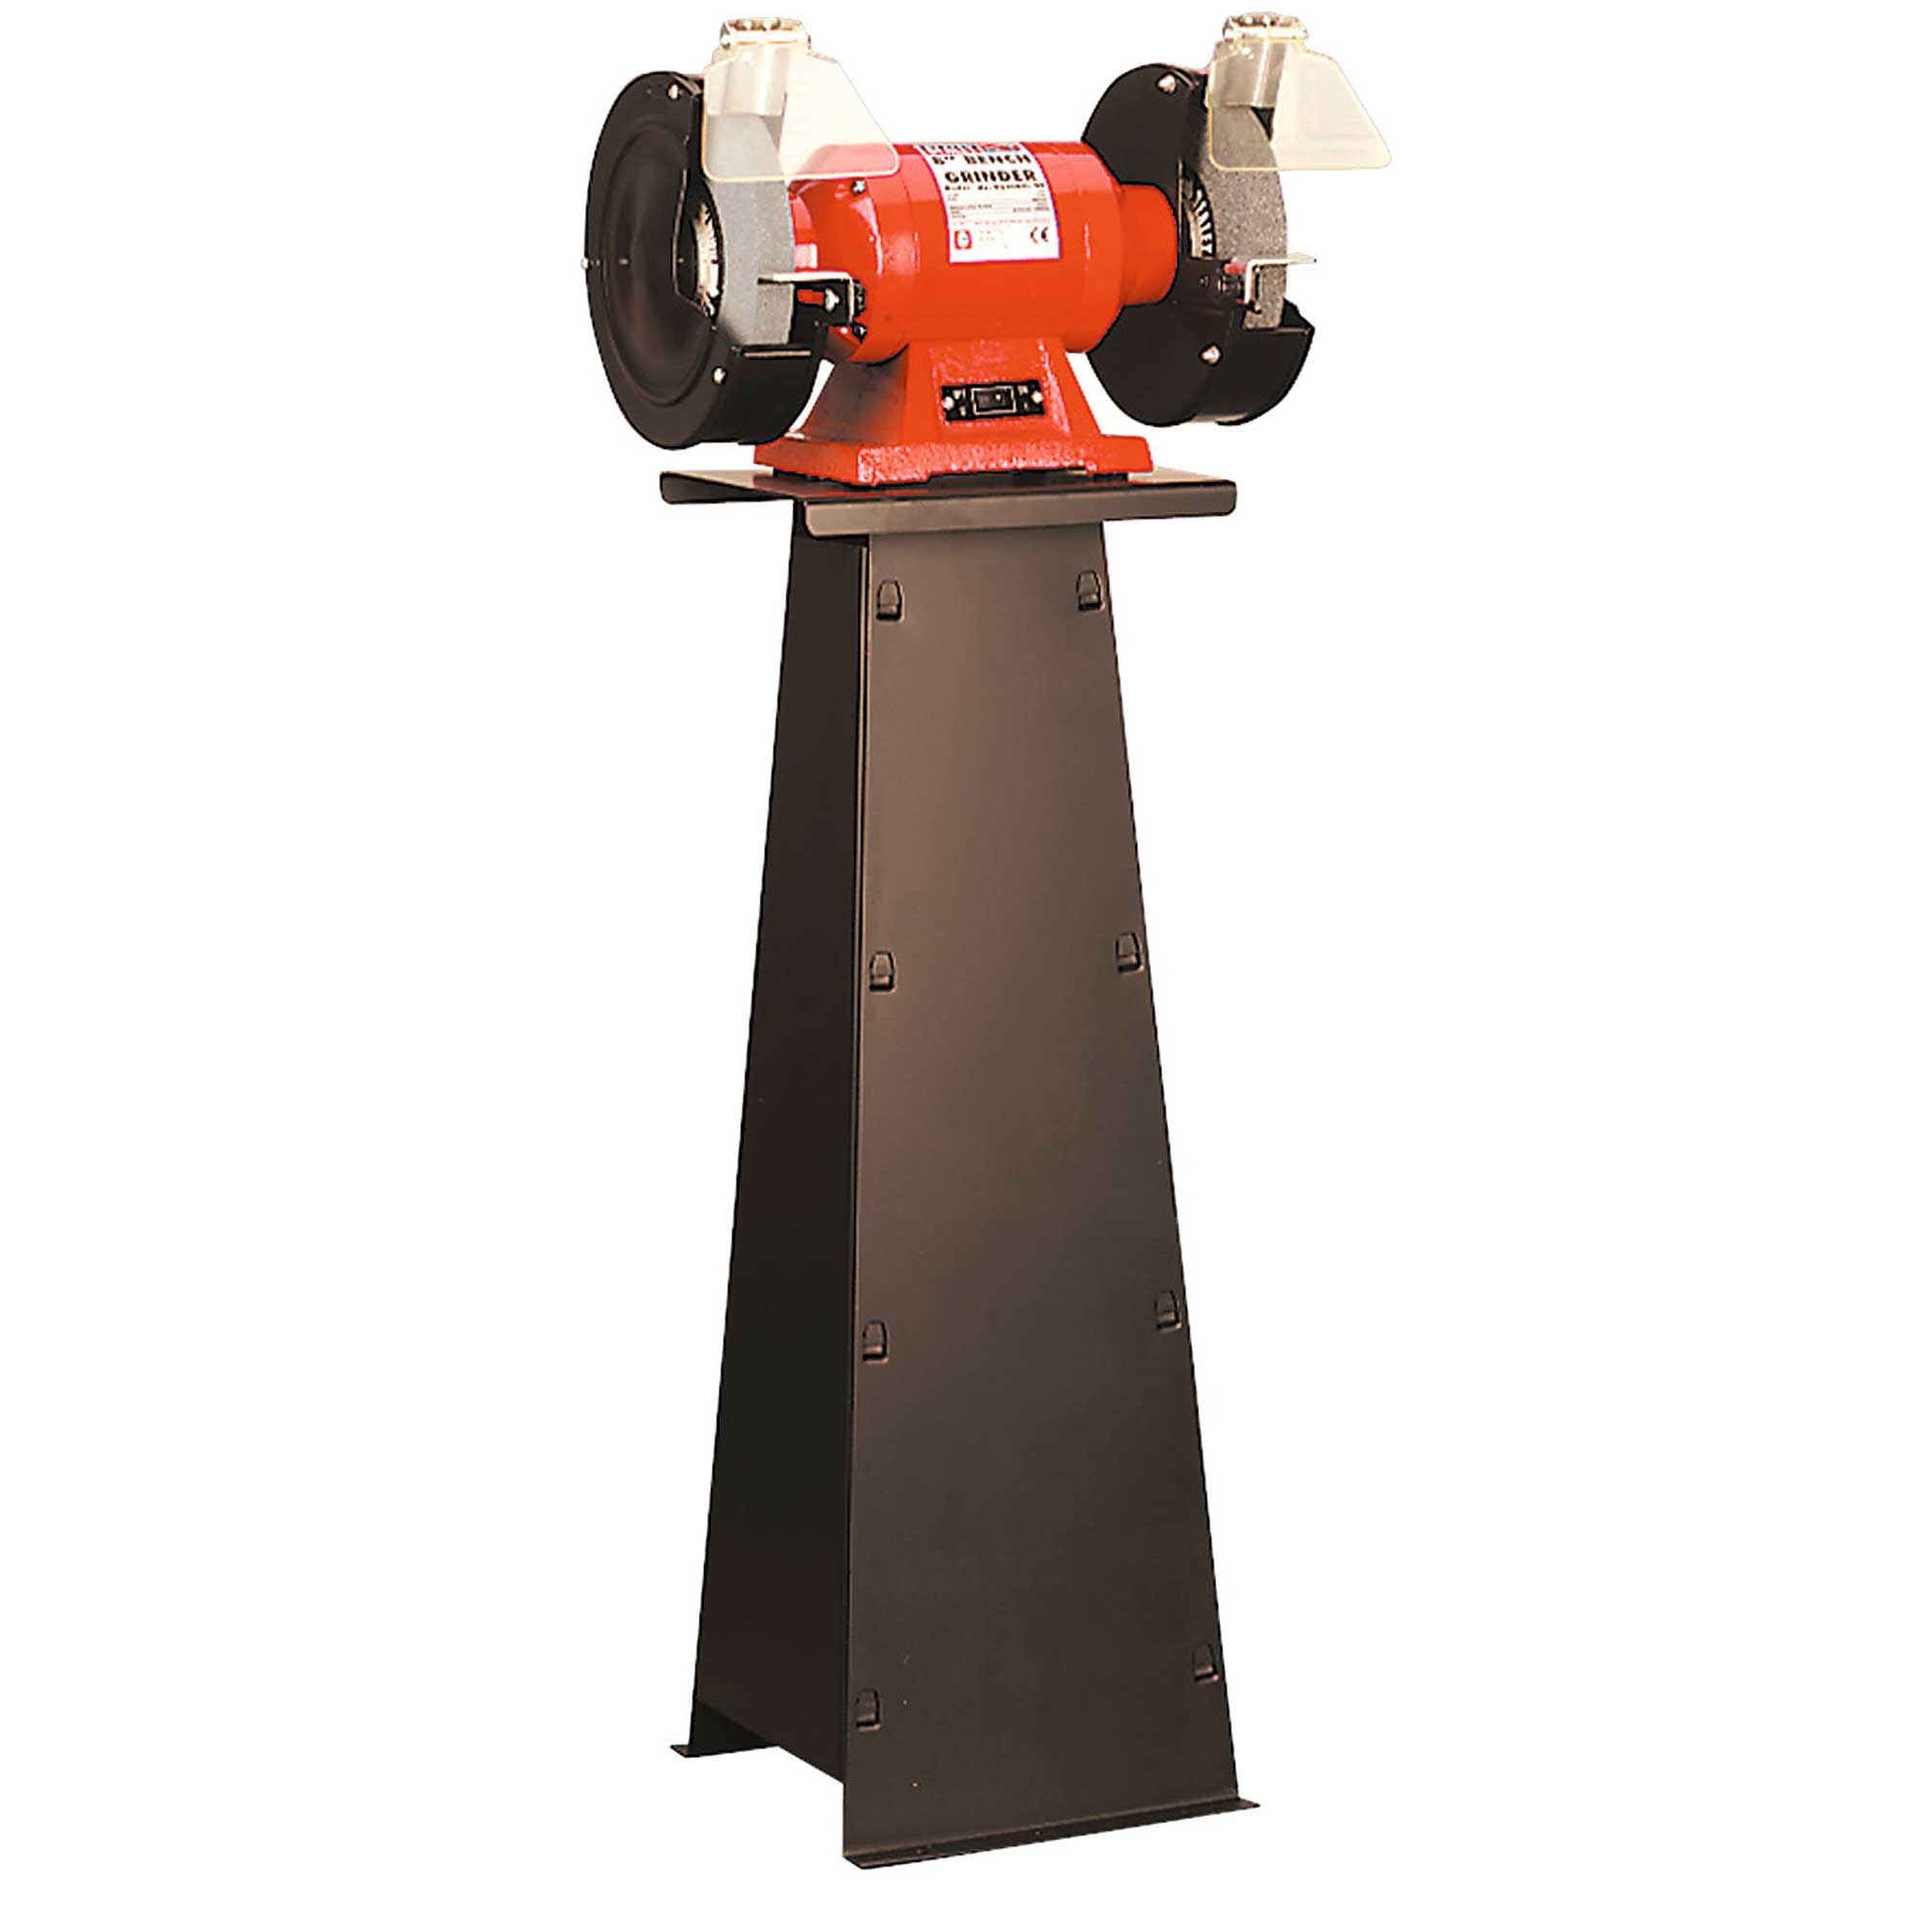 Sealey Secure Floor Stand For Sealey Bench Grinding